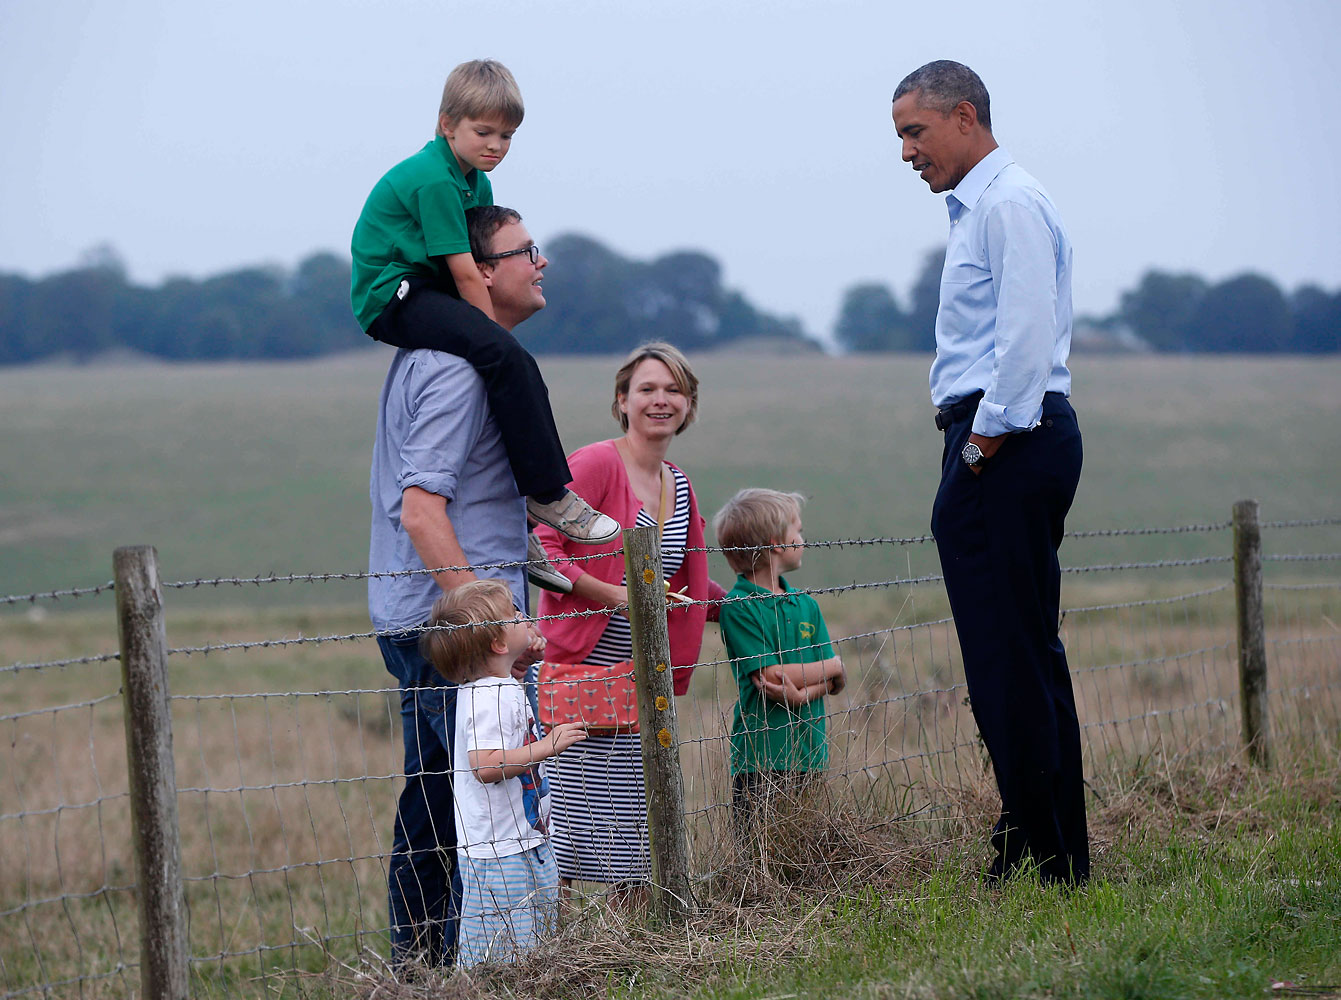 President Barack Obama meets a family in a field as he visits Stonehenge after leaving the NATO summit in Newport, Wales, Friday, Sept. 5, 2014. (AP Photo/Charles Dharapak)